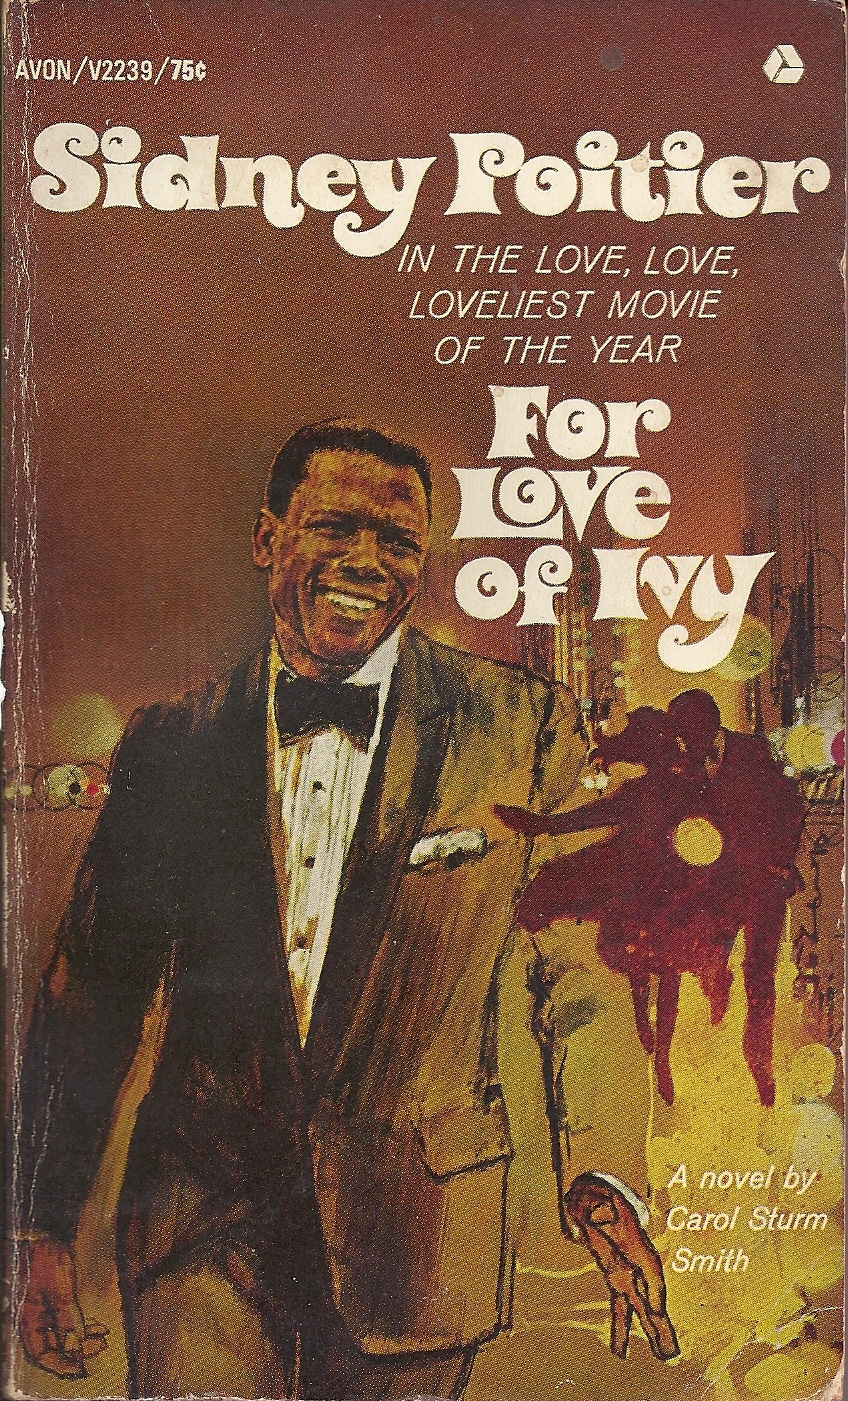 For Love Of Ivy: a novel based on the screenplay  by  Robert Alan Aurthur, from a story by Sidney Poitier by Carol Sturm Smith